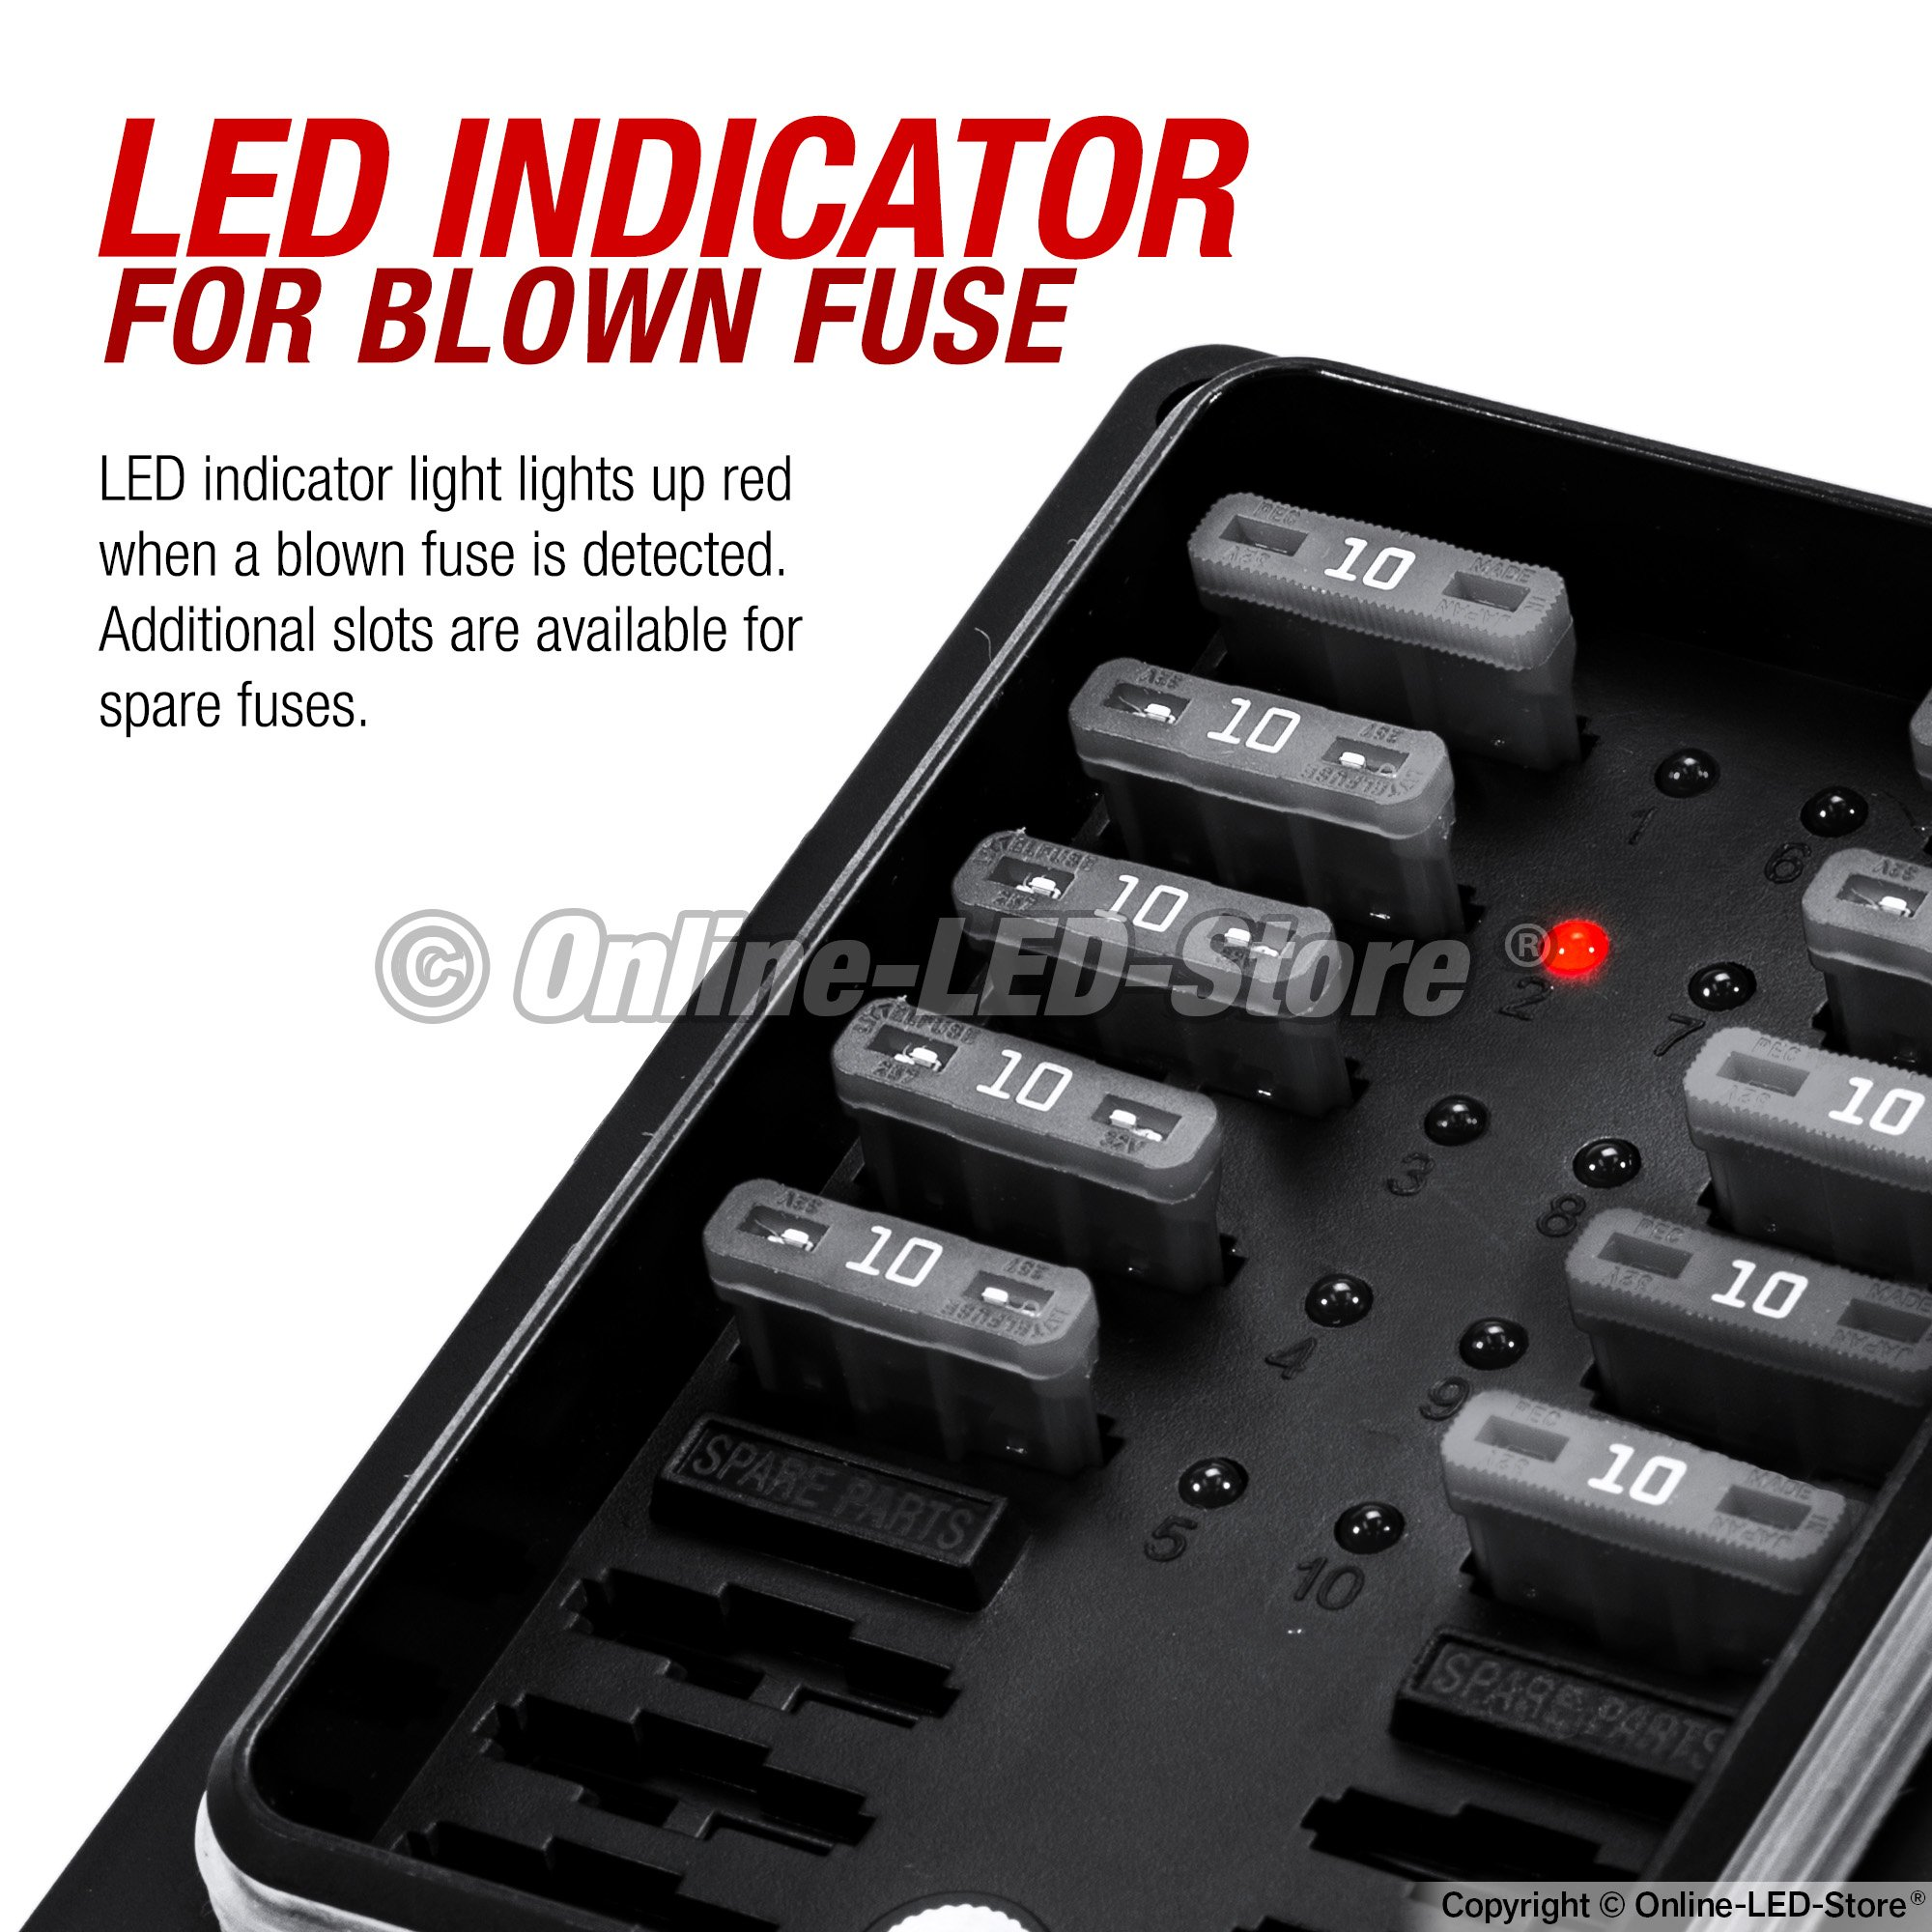 Online Led Store Waterproof Blade Fuse Box Ip56 Indicator 12v 1 X 4 Way Holder For Blown Protection Cover 250 Amp Block Automotive Marine Boats